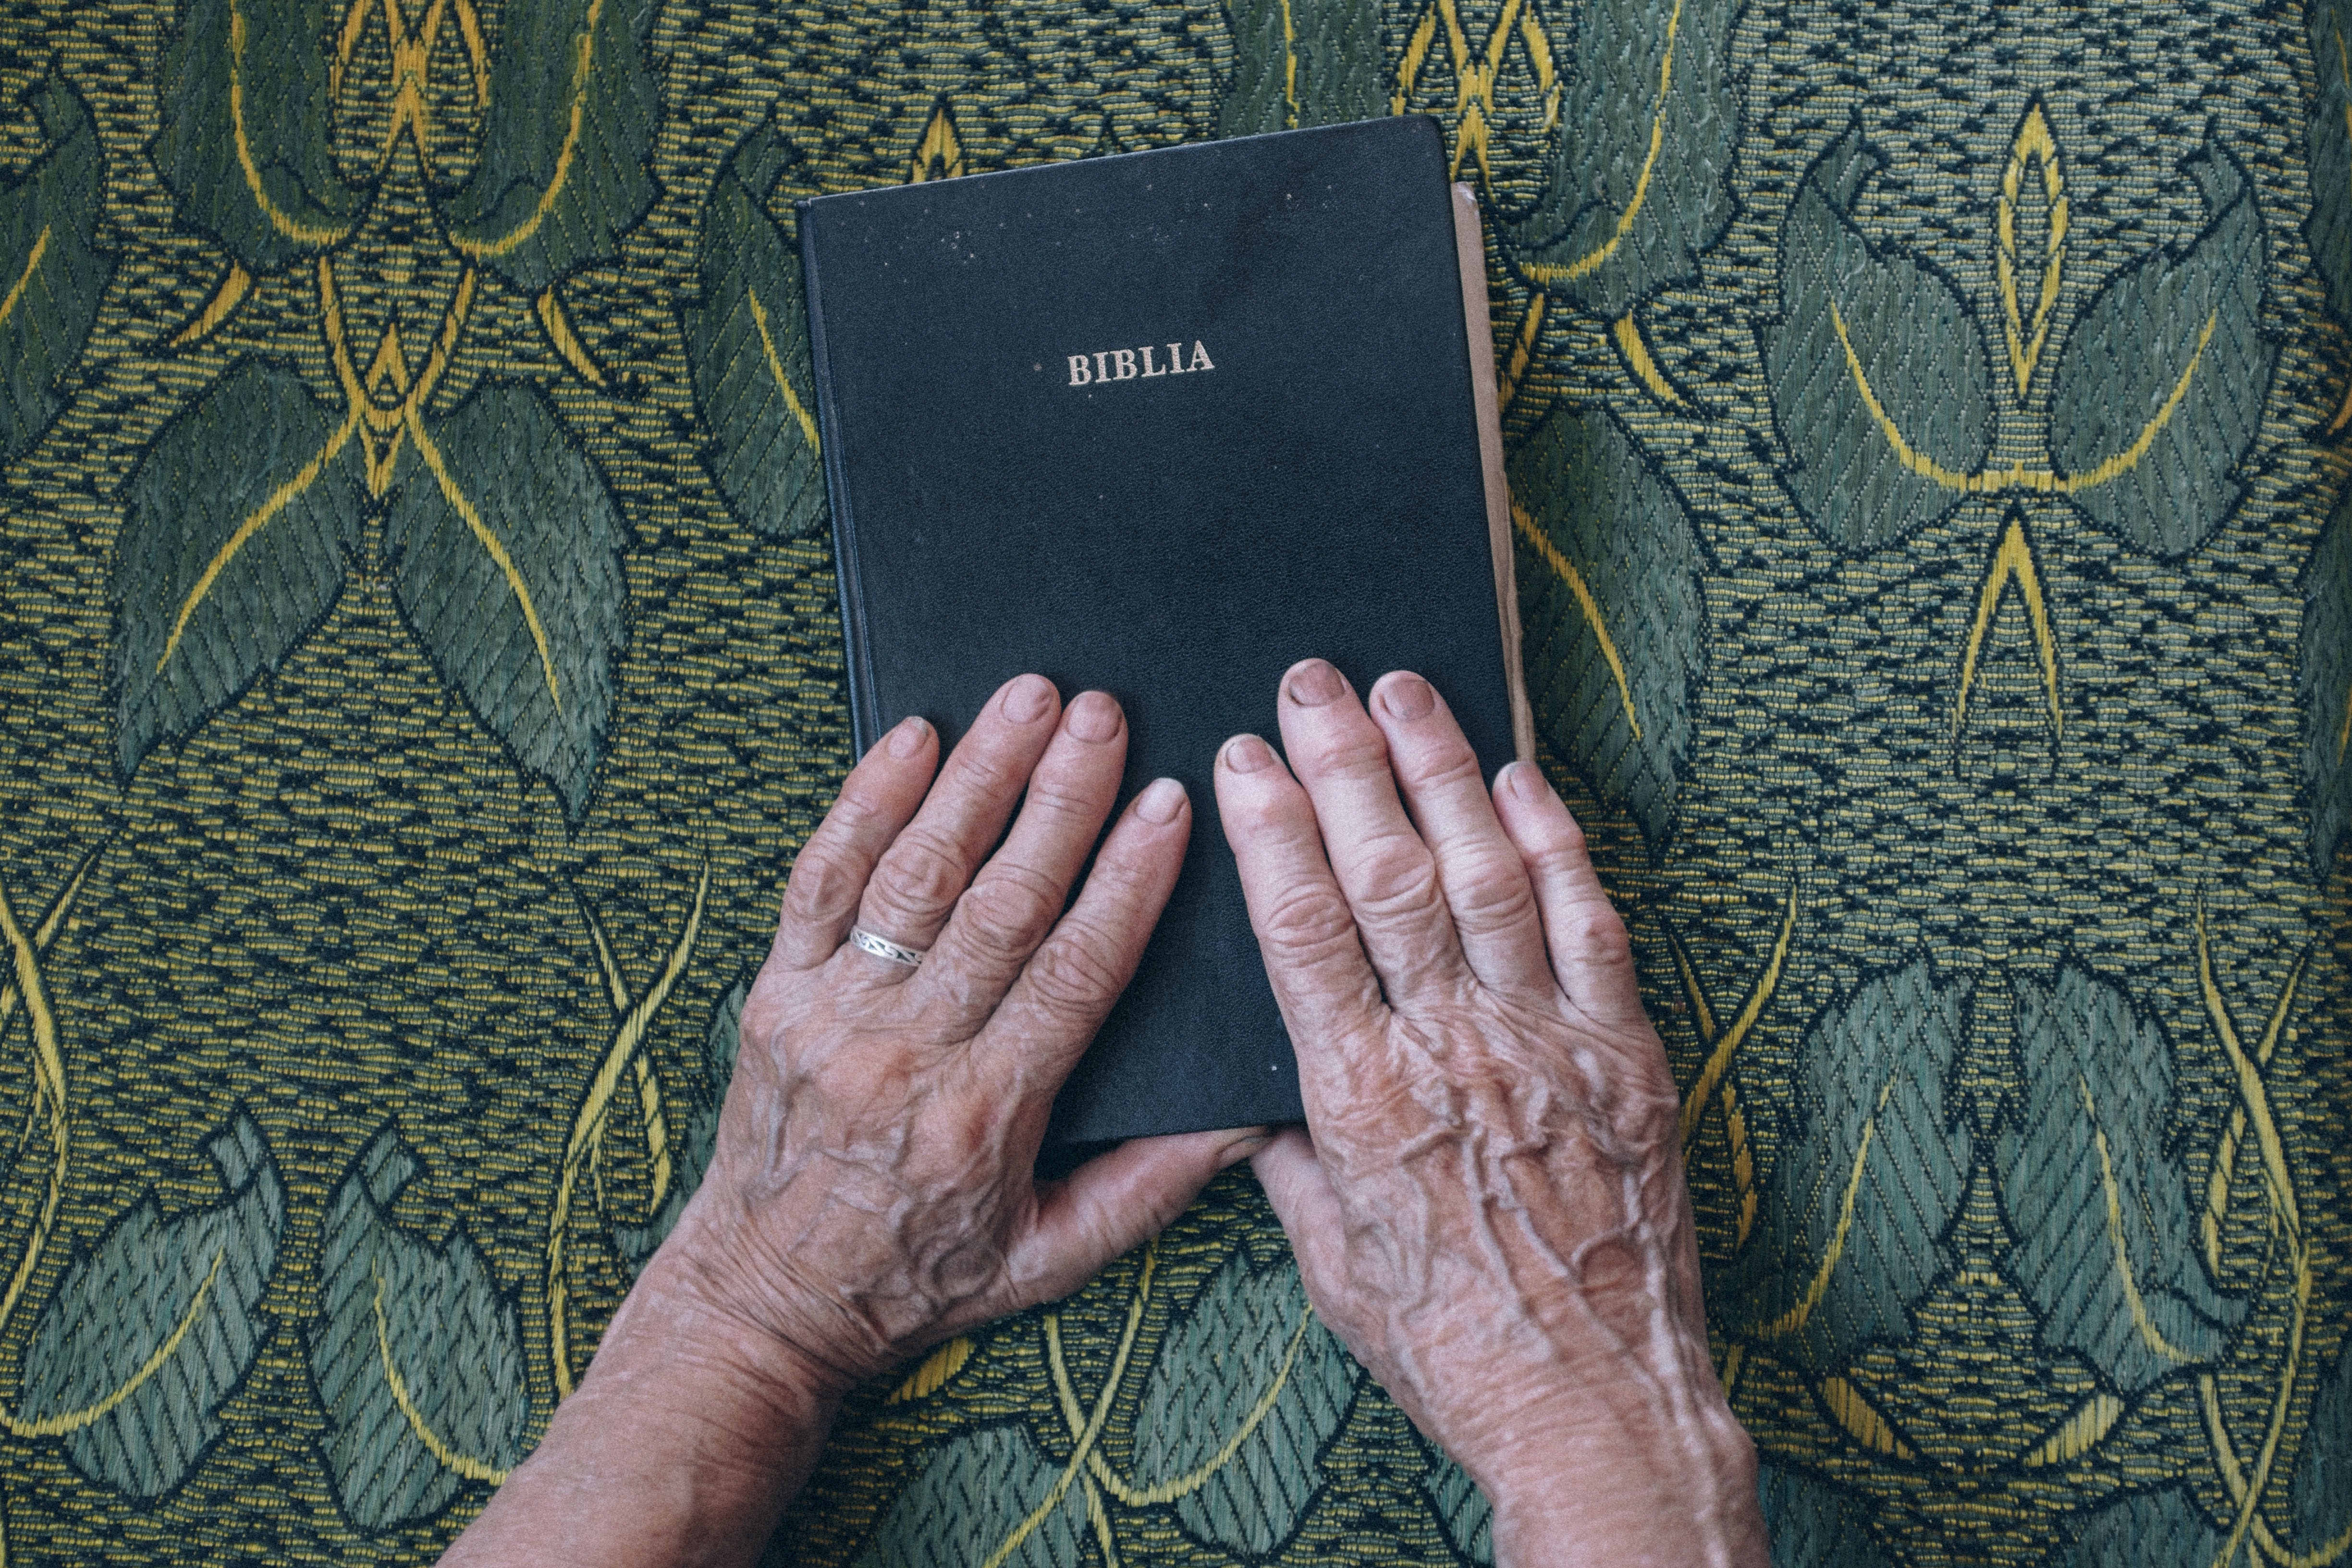 Two elderly hands touching a Romanian bible placed on a green leaf print.